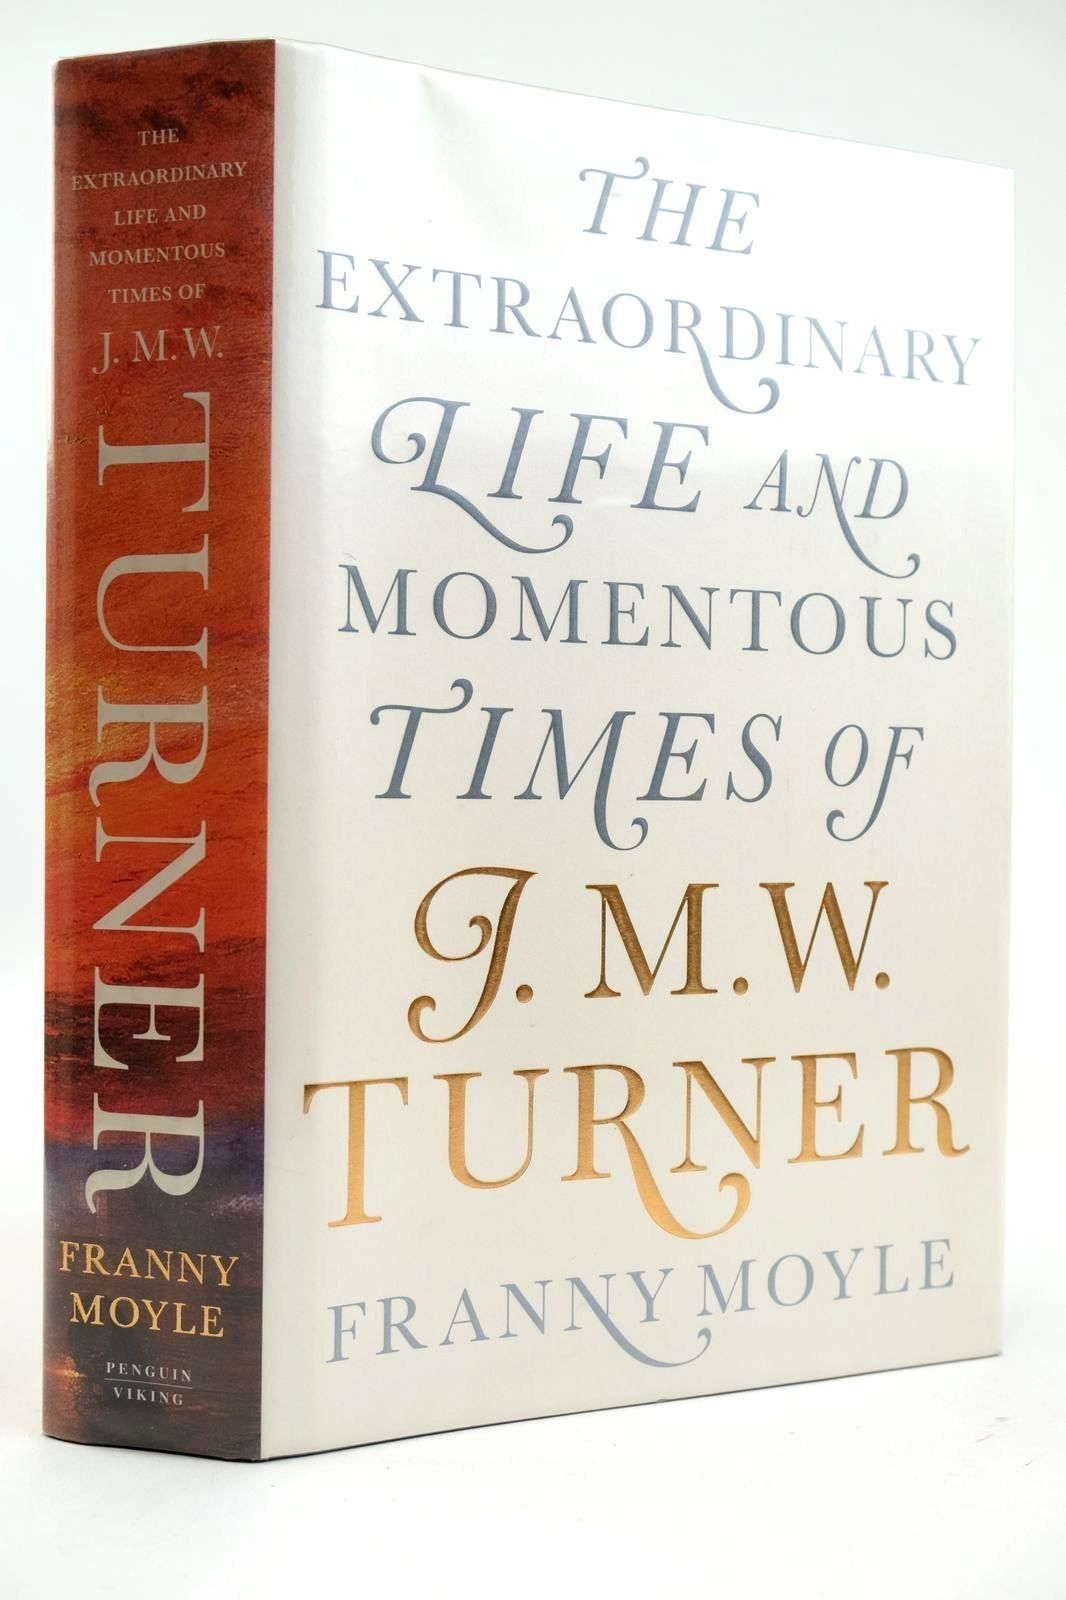 Photo of TURNER THE EXTRAORDINARY AND MOMENTOUS TIMES OF J.M.W. TURNER written by Moyle, Franny published by Viking (STOCK CODE: 2132689)  for sale by Stella & Rose's Books